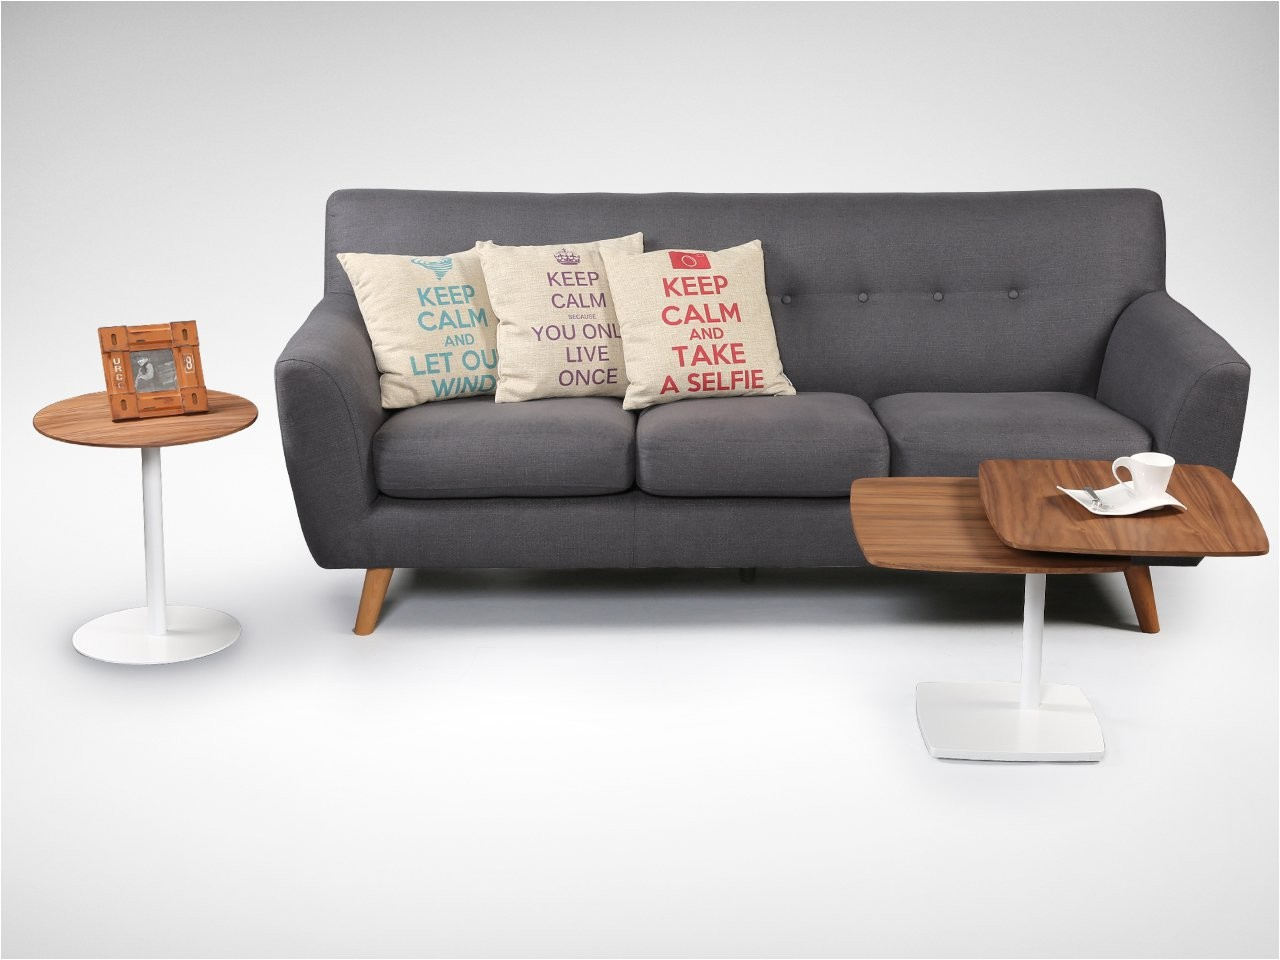 Best Place to Buy Leather sofa Singapore Moriah 3 Seater sofa Comfort Design the Chair Table People